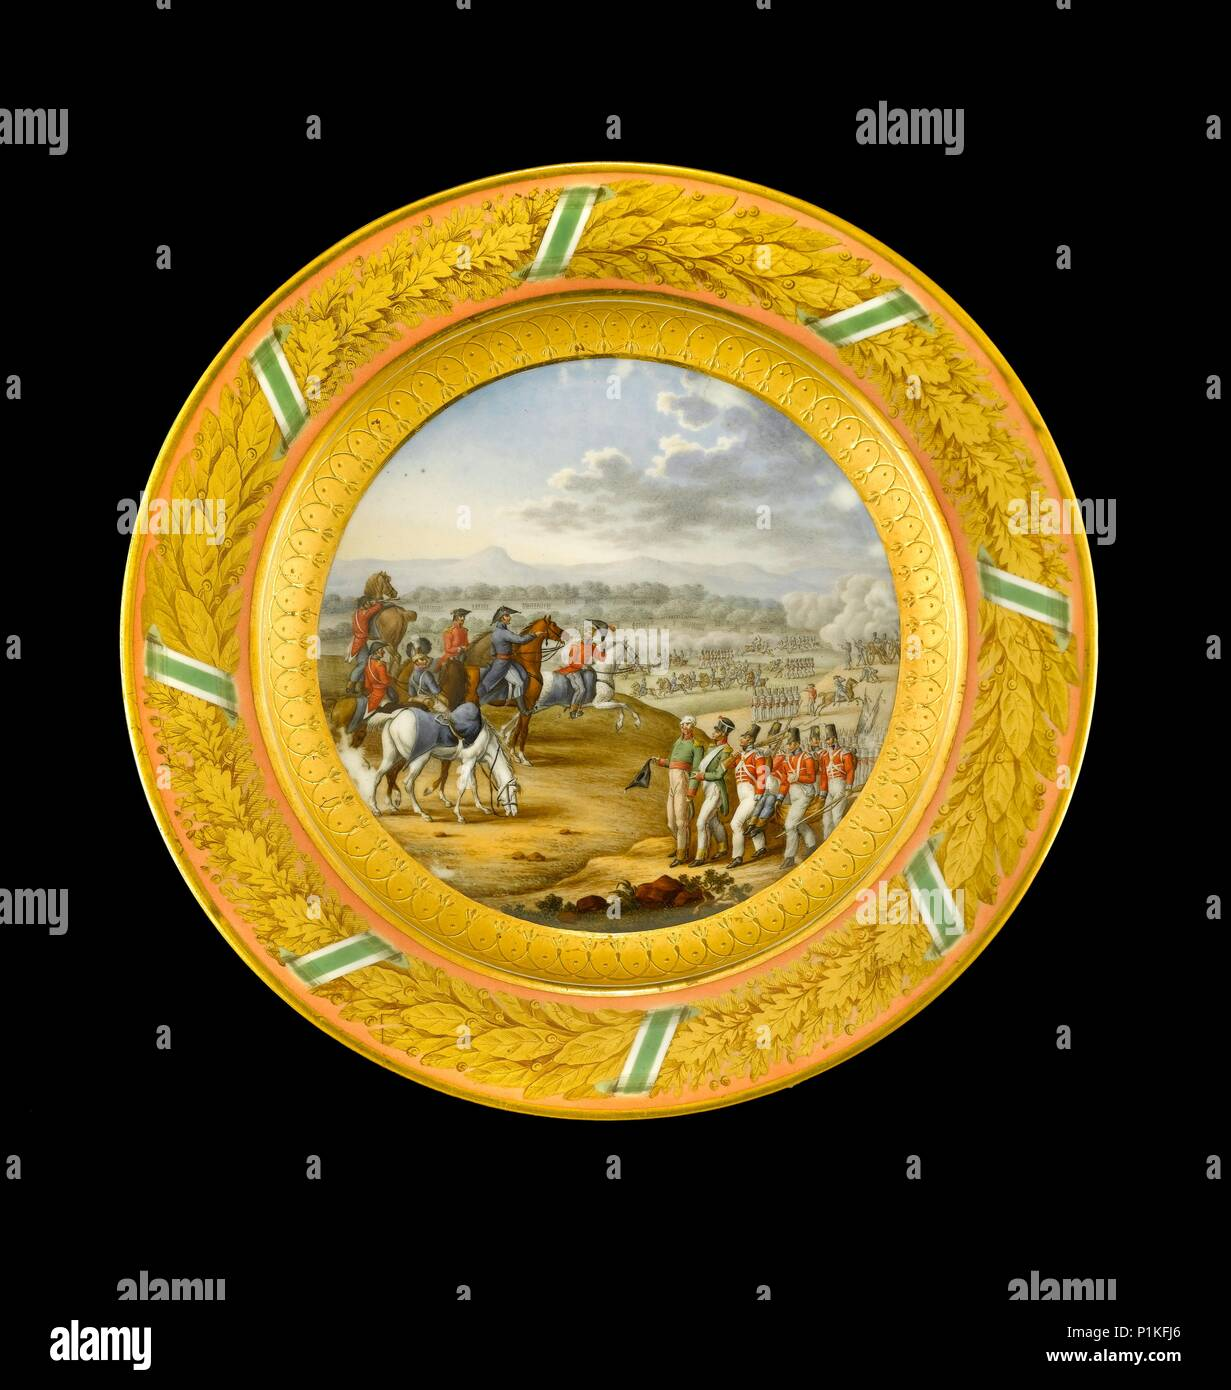 Dessert plate depicting the Battle of Fuentes d'Onoro, 1811 (1818). Item in Apsley House, London. Dessert plate from the Duke of Wellington's Saxon Se - Stock Image